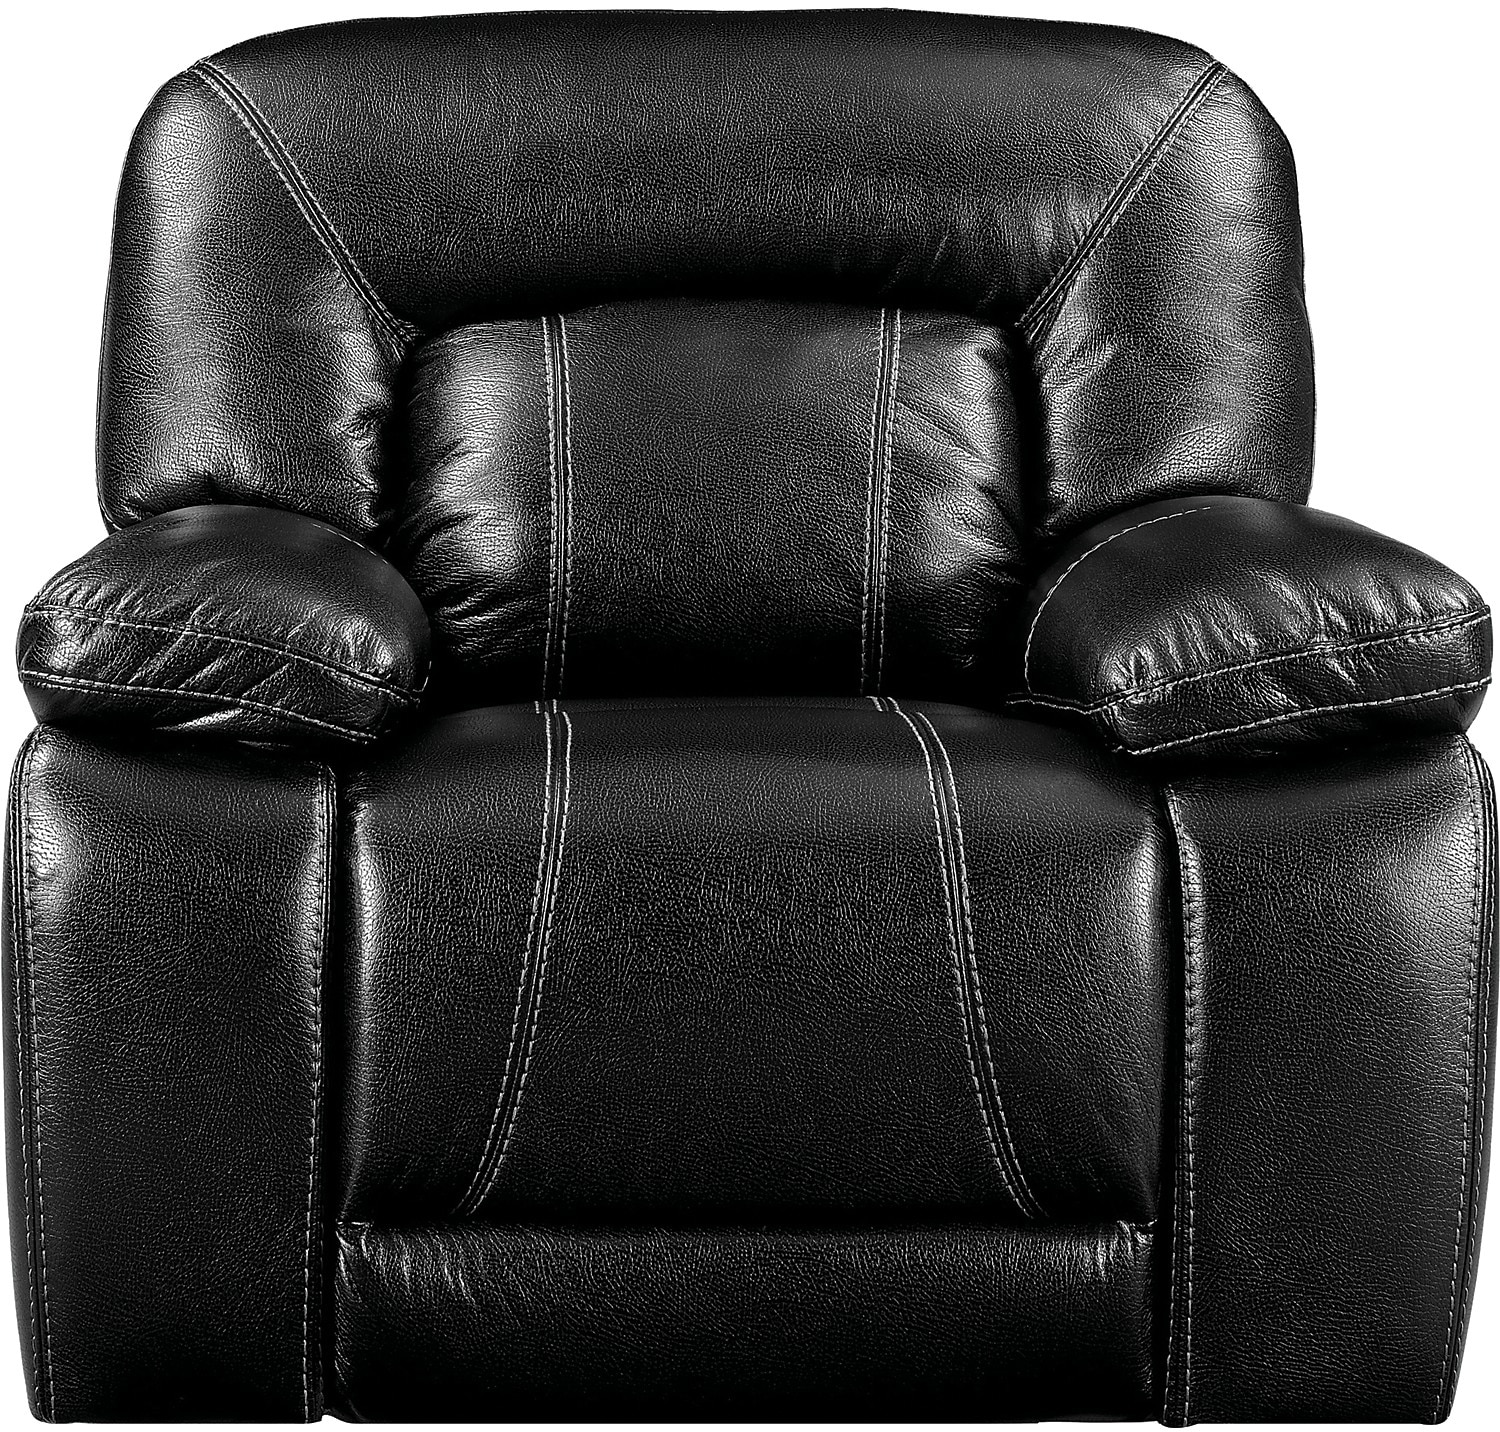 Kimba Leather-Look Fabric Reclining Chair – Black